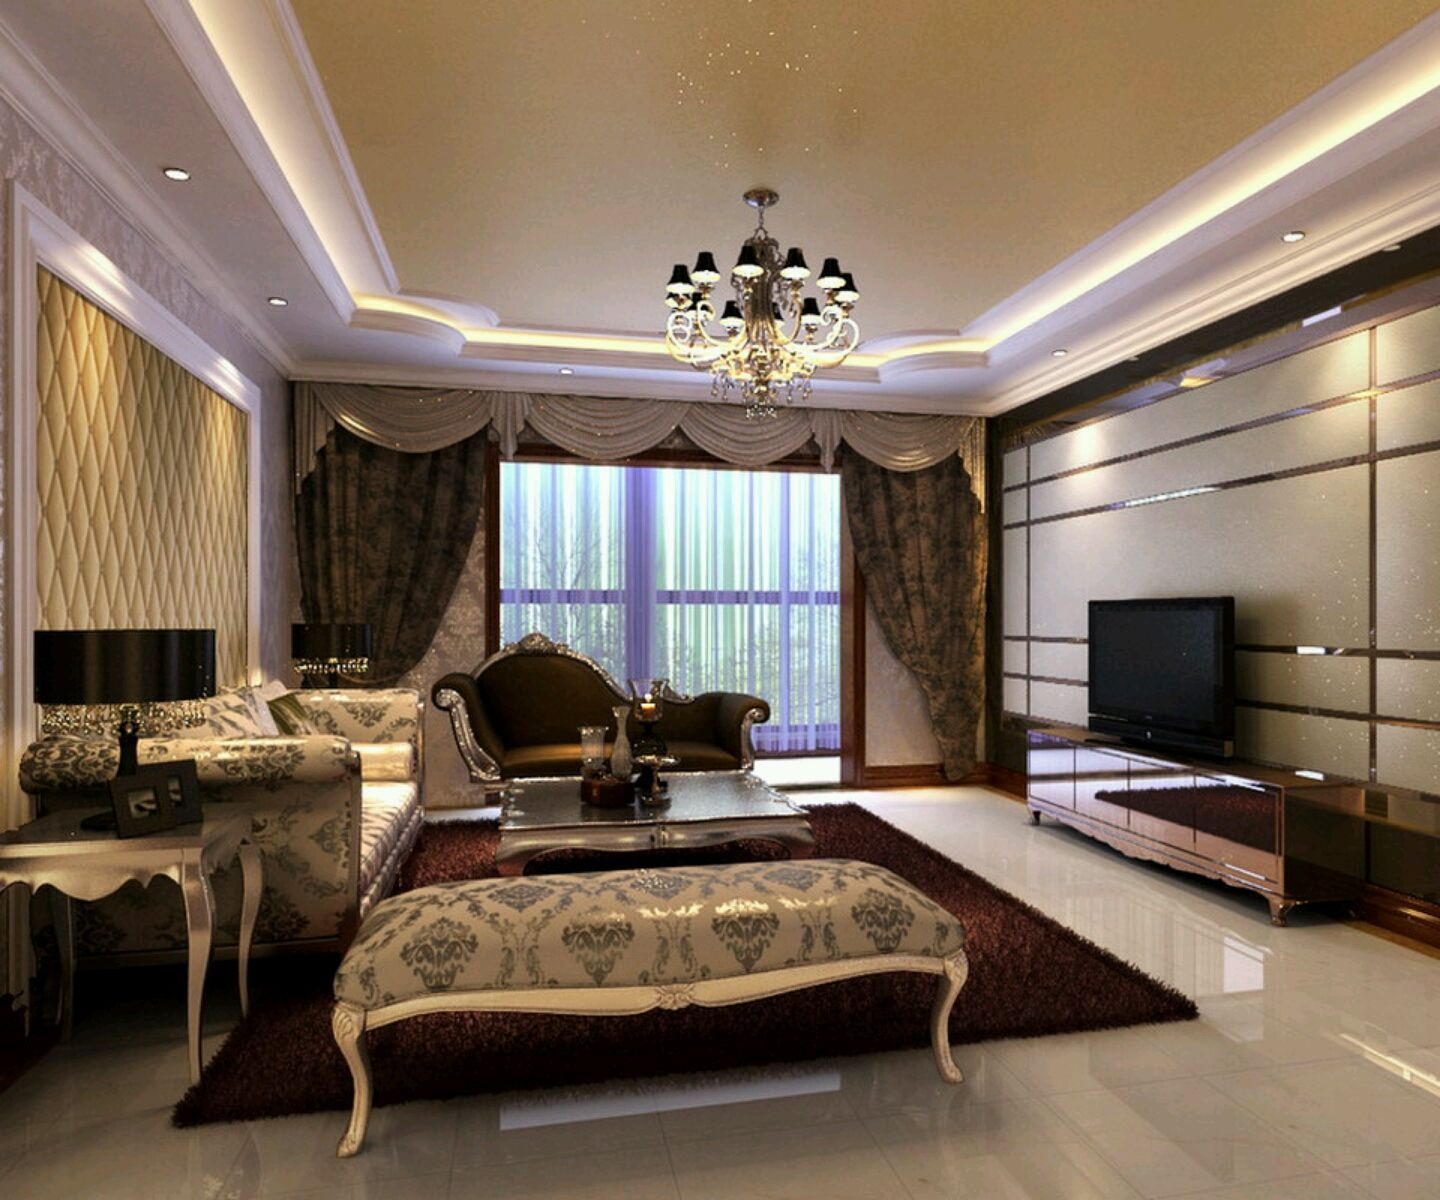 Home Living Room Designs Luxury Home Interior Design Gzuqbv  Luxury House Interior .